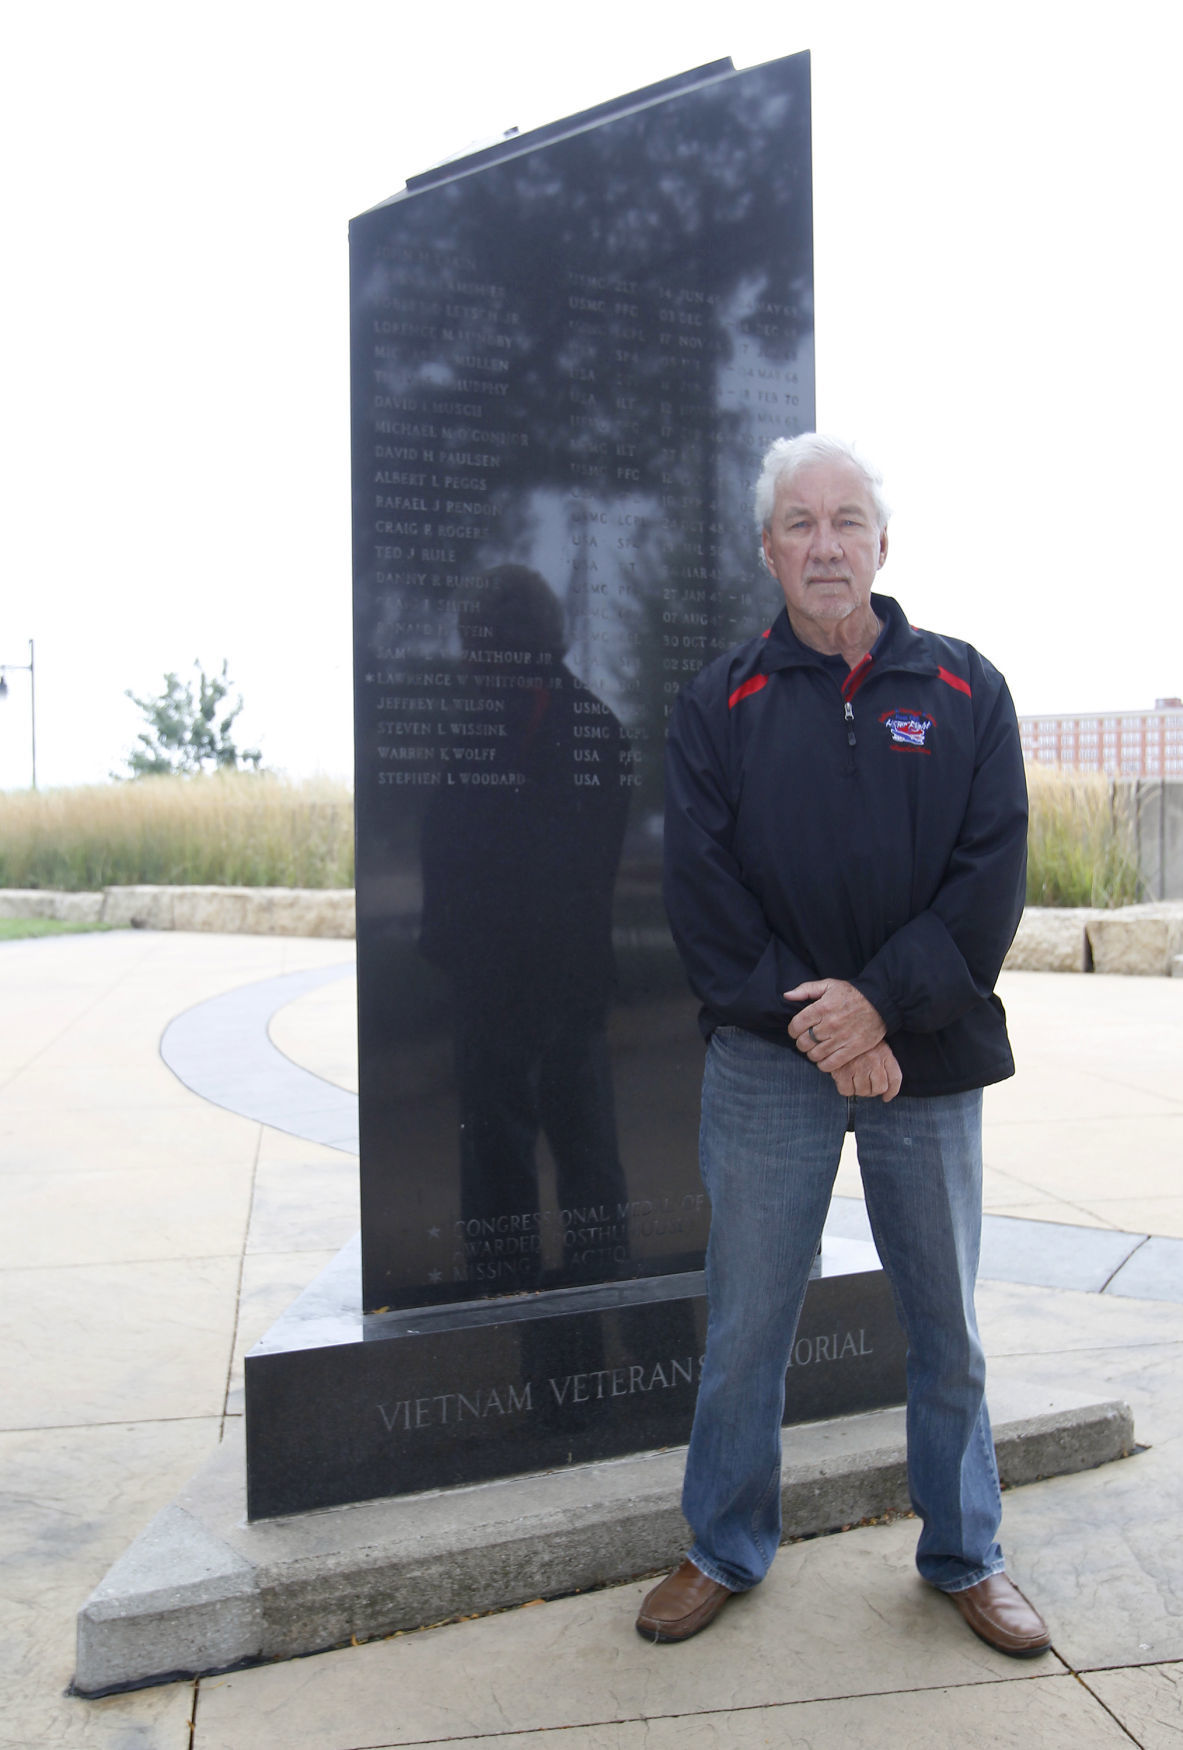 Vietnam memorial vigil in Waterloo this weekend | Local News